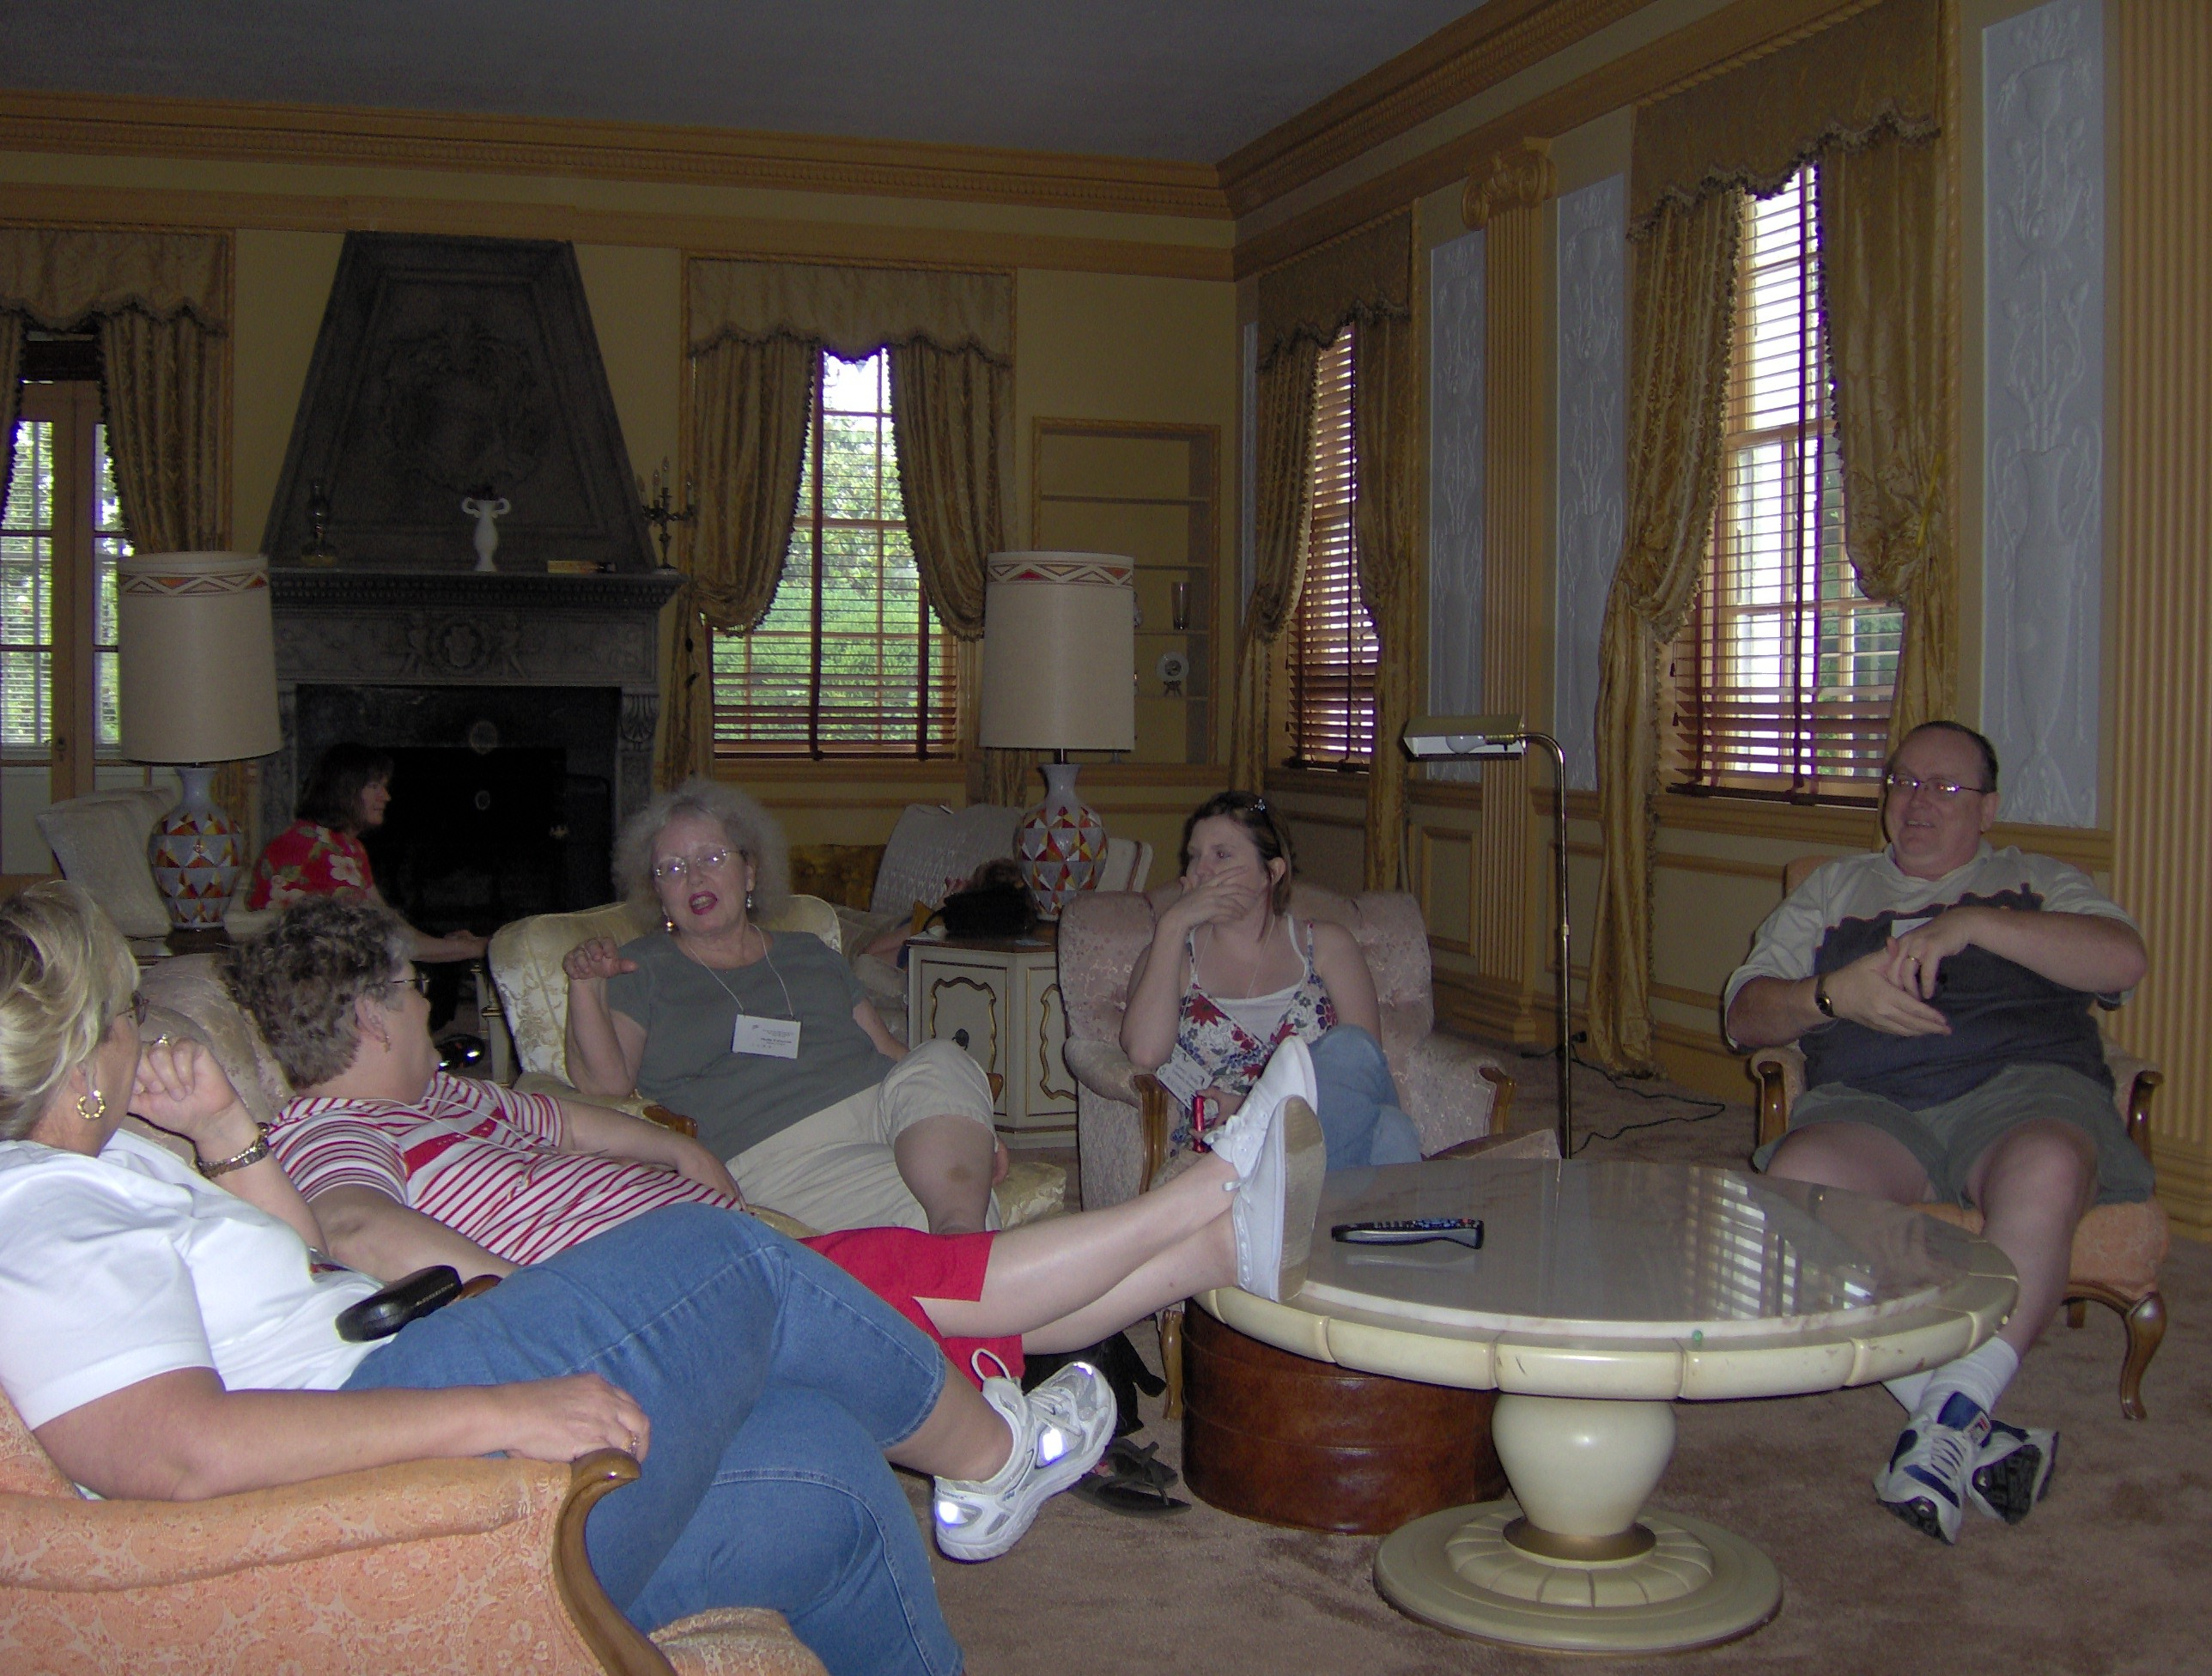 2007 OFHS Meeting in Charlottesville, VA (Some OFHS members relaxing inside Tiverton - Frederick Owsley House